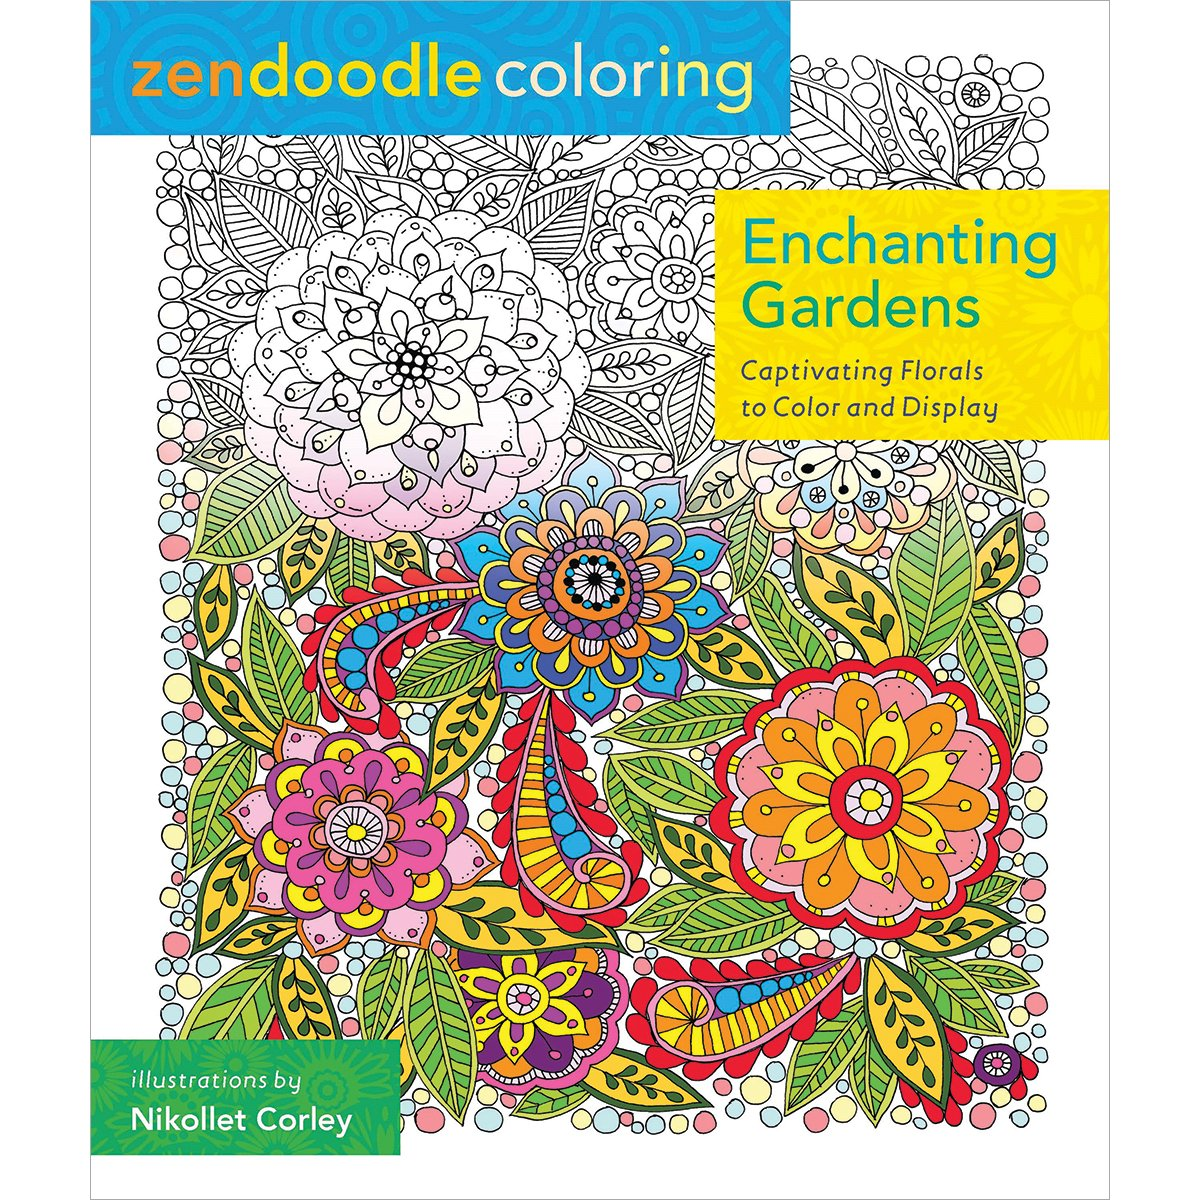 Zendoodle coloring enchanting gardens - Amazon Com Zendoodle Coloring Enchanting Gardens Captivating Florals To Color And Display 9781250086464 Nikolett Corley Books